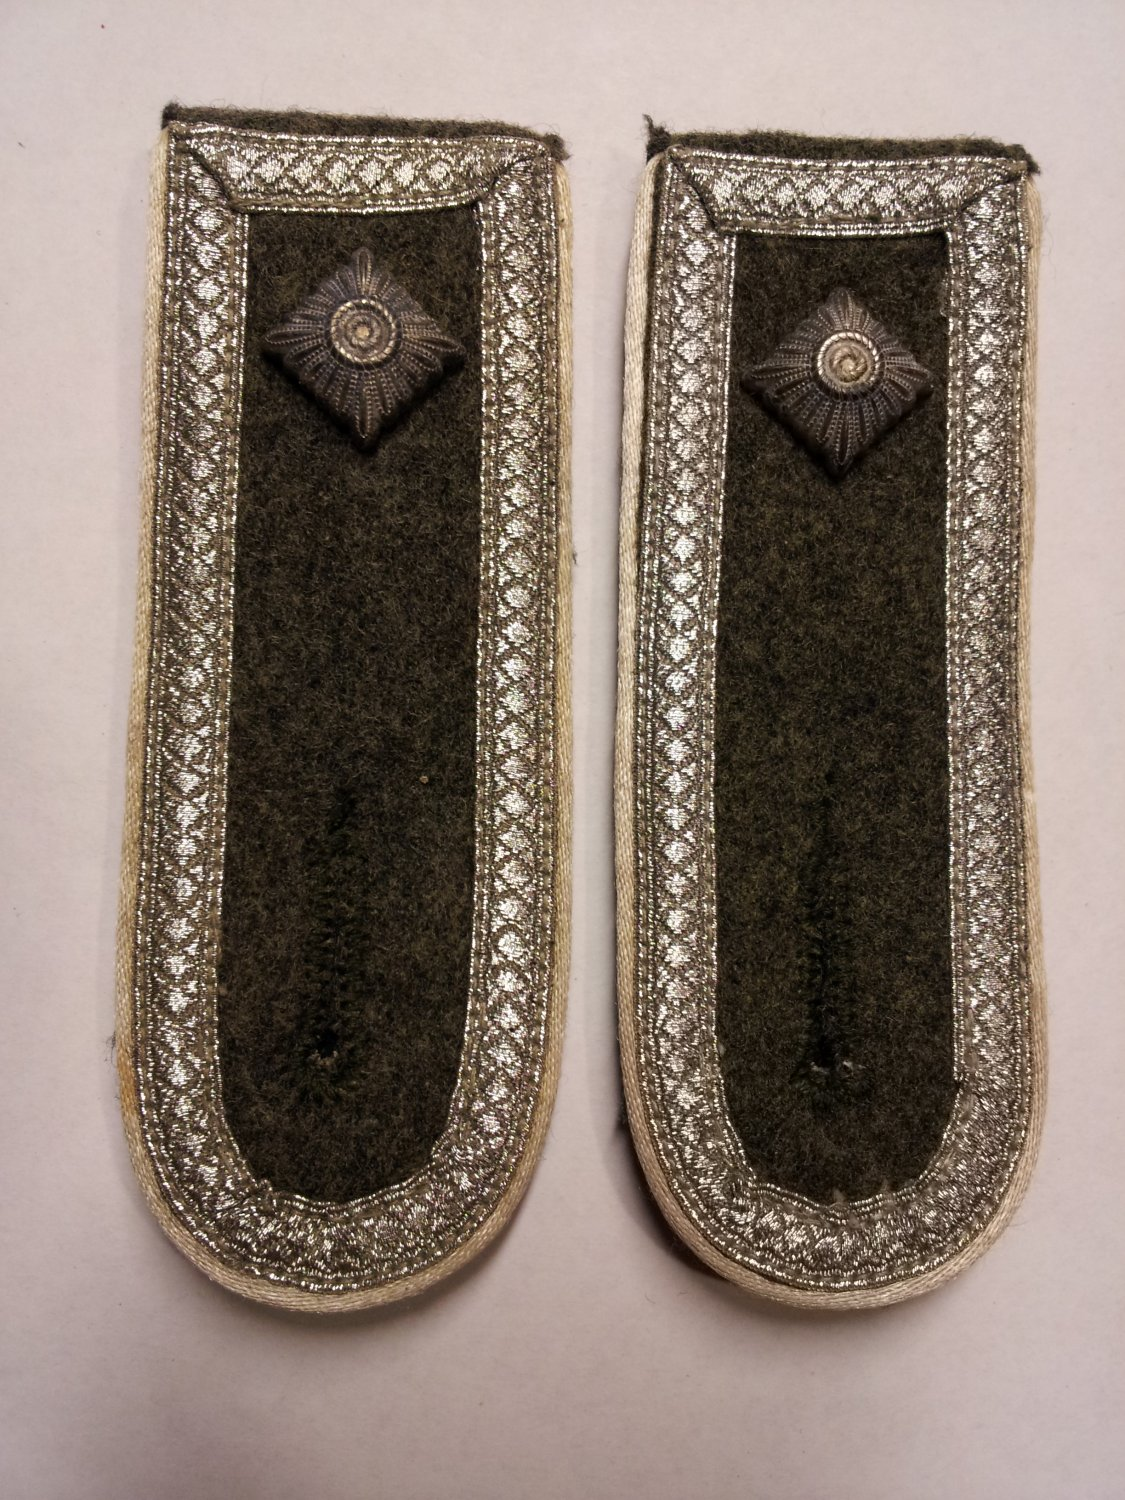 WWII GERMAN ARMY INFANTRY SENIOR NCO SHOULDER BOARDS